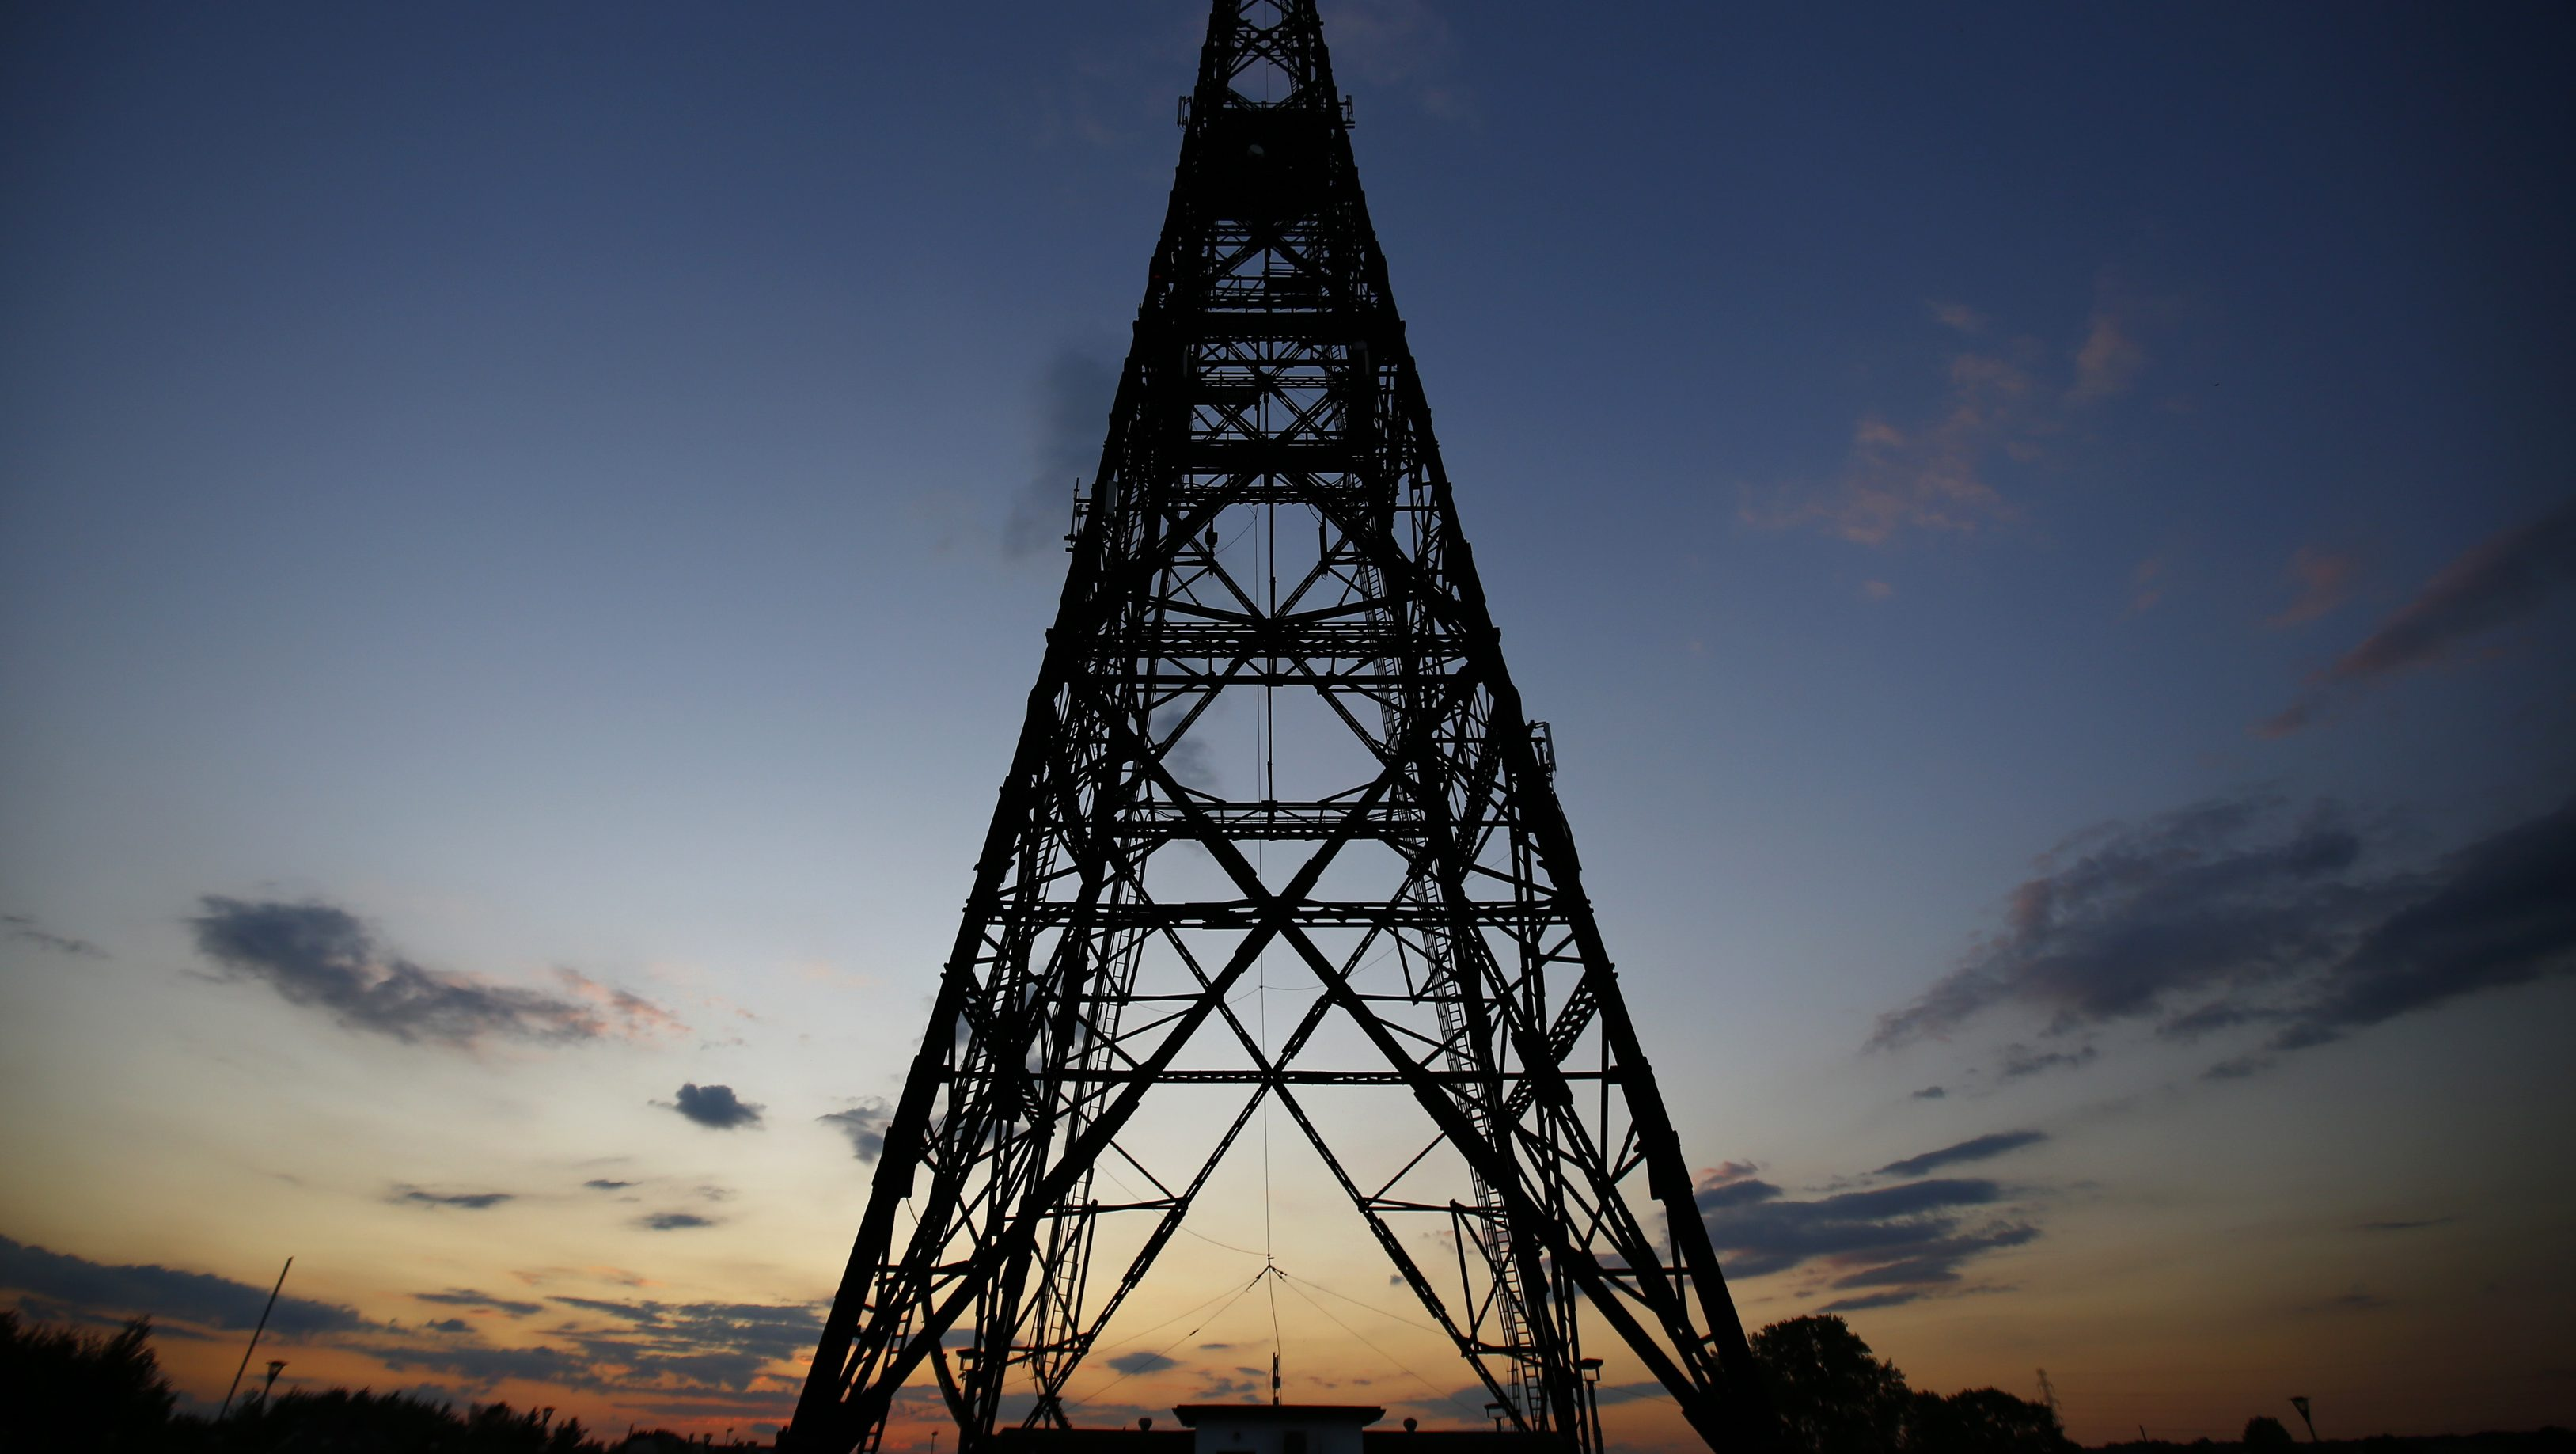 Gliwice radio tower, Europe's tallest wooden structure, is pictured after sunset at Gliwice radio station in Upper Silesia, southern Poland, August 28, 2014. As Poles and Germans prepare to mark the 75th anniversary on Monday of Hitler's invasion of Poland, historians and residents of Gliwice recalled the seizure of the radio station - still today Europe's tallest wooden structure - and drew parallels with the role of media in modern conflicts such as Ukraine. Picture taken on August 28, 2014. REUTERS/Kacper Pempel (POLAND - Tags: CONFLICT ANNIVERSARY) - GM1EA8U04TF01